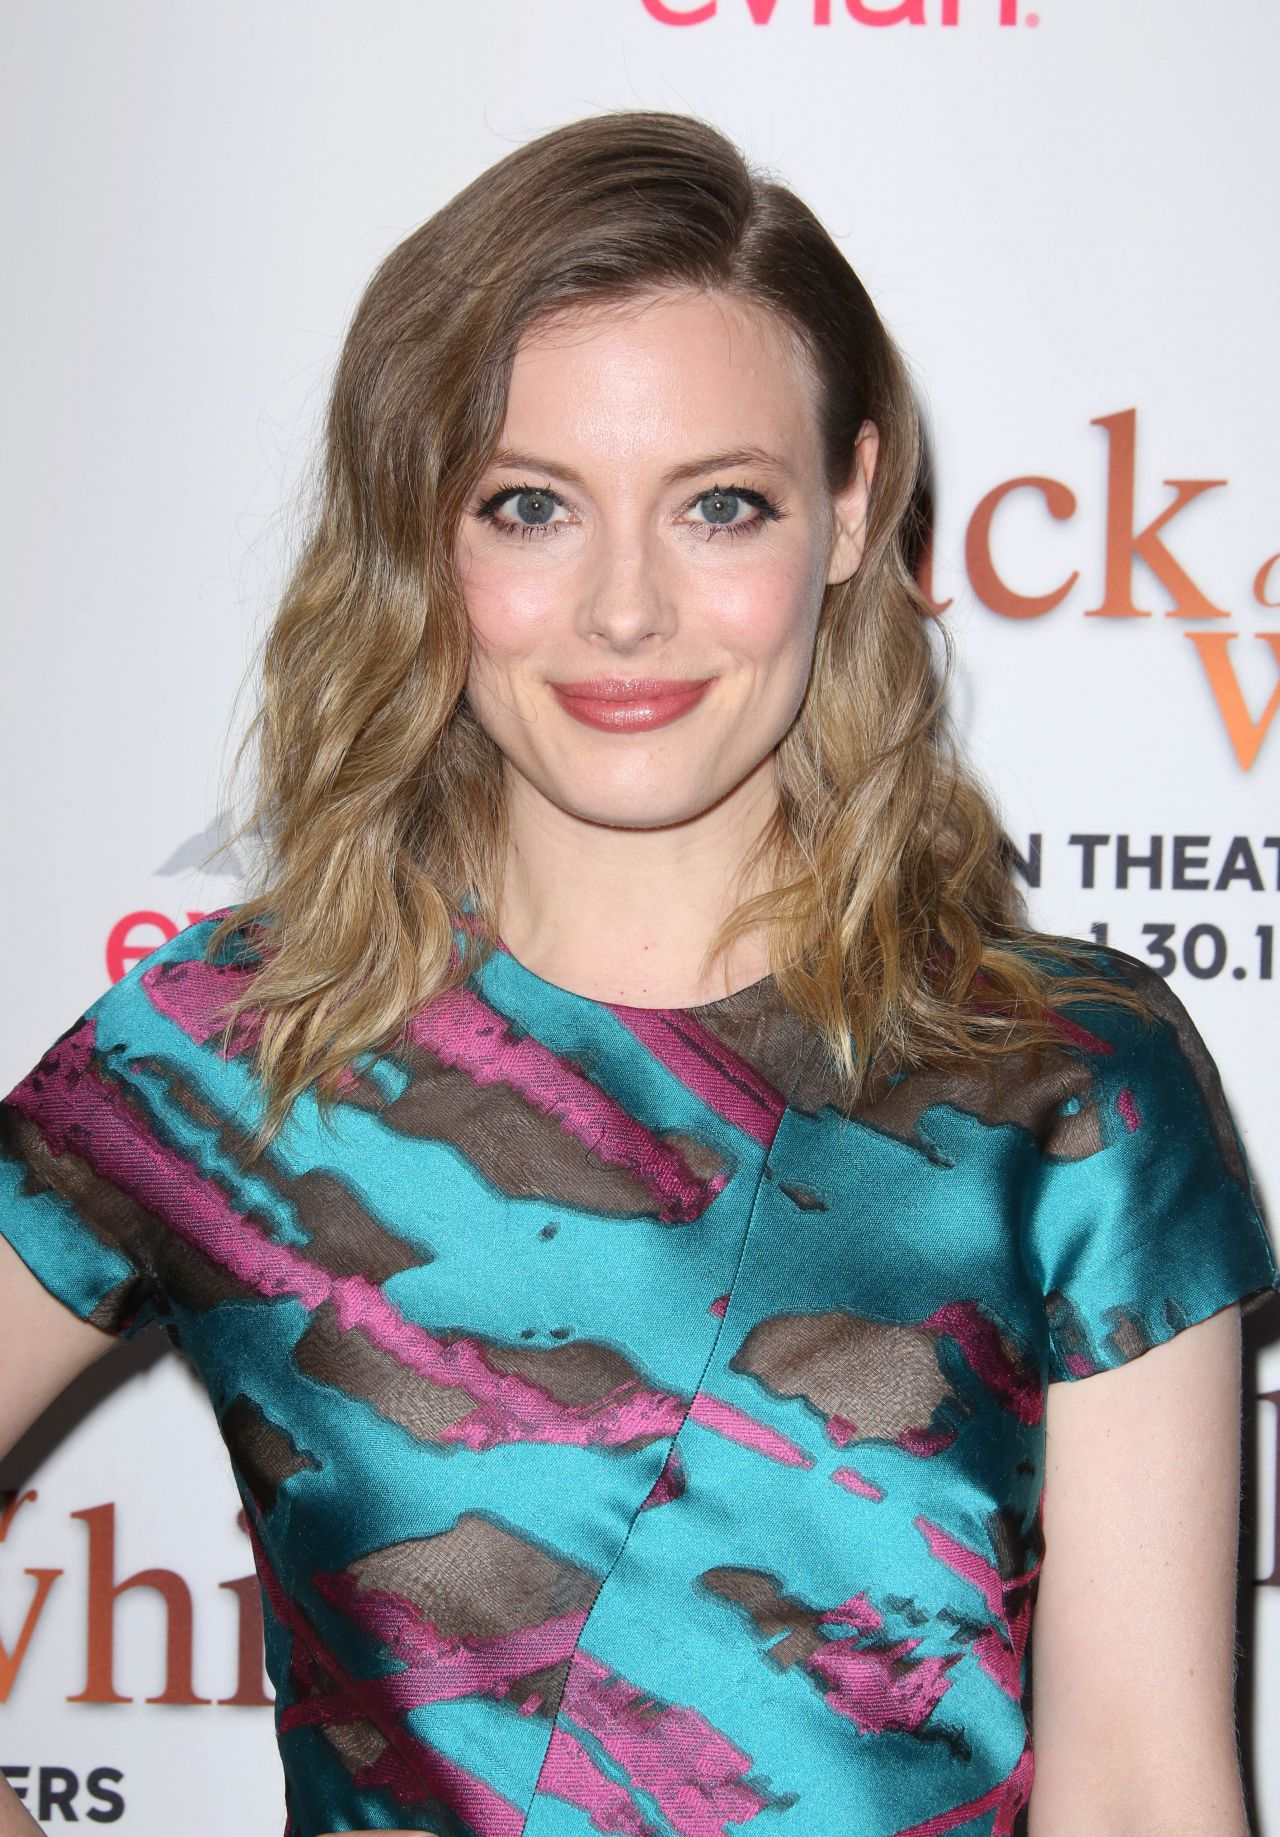 Gillian Jacobs Black Or White Premiere In Los Angeles